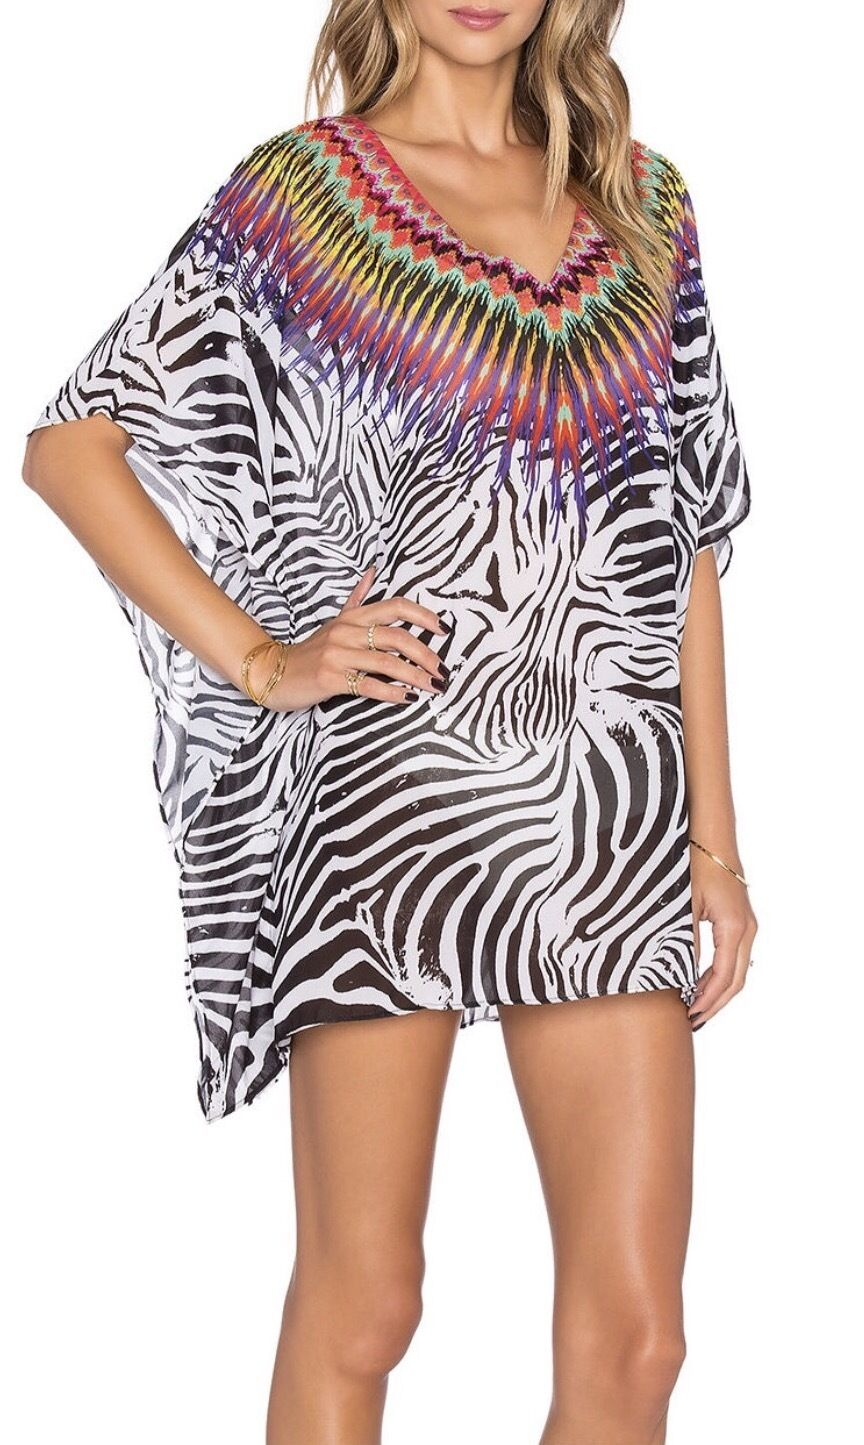 154 NWT PILYQ EMBROIDERED BEADED ZEBRA PRINT COVER UP TUNIC